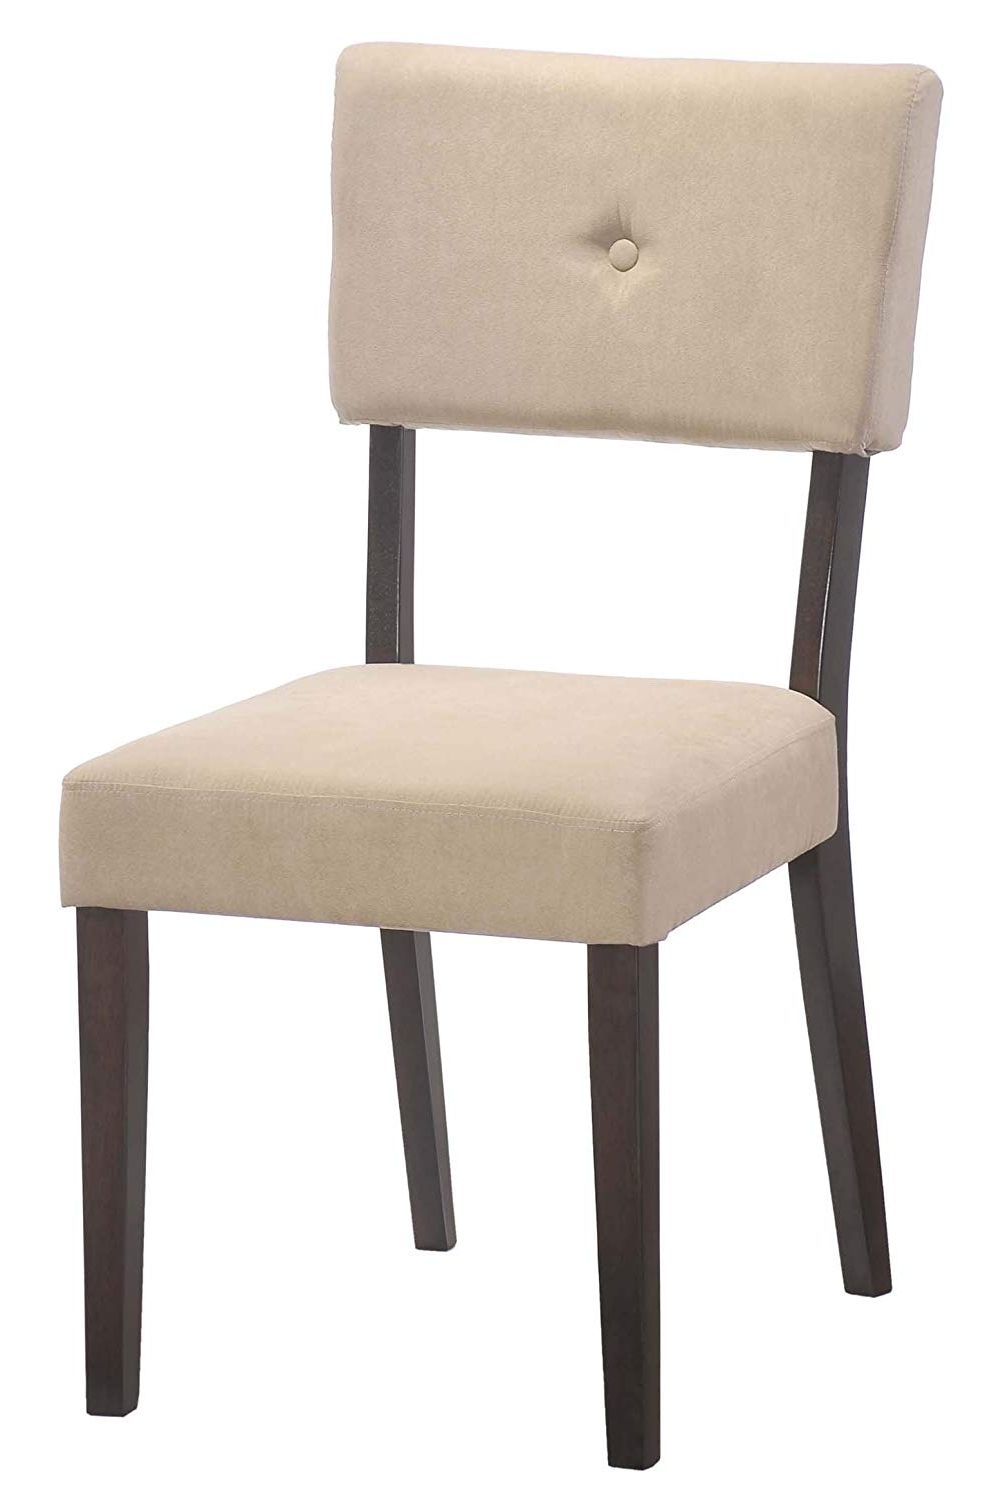 Jaxon Grey Upholstered Side Chairs Throughout Current Amazon: Contemporary Side Chair – Set Of 2 720088: Kitchen & Dining (View 7 of 20)